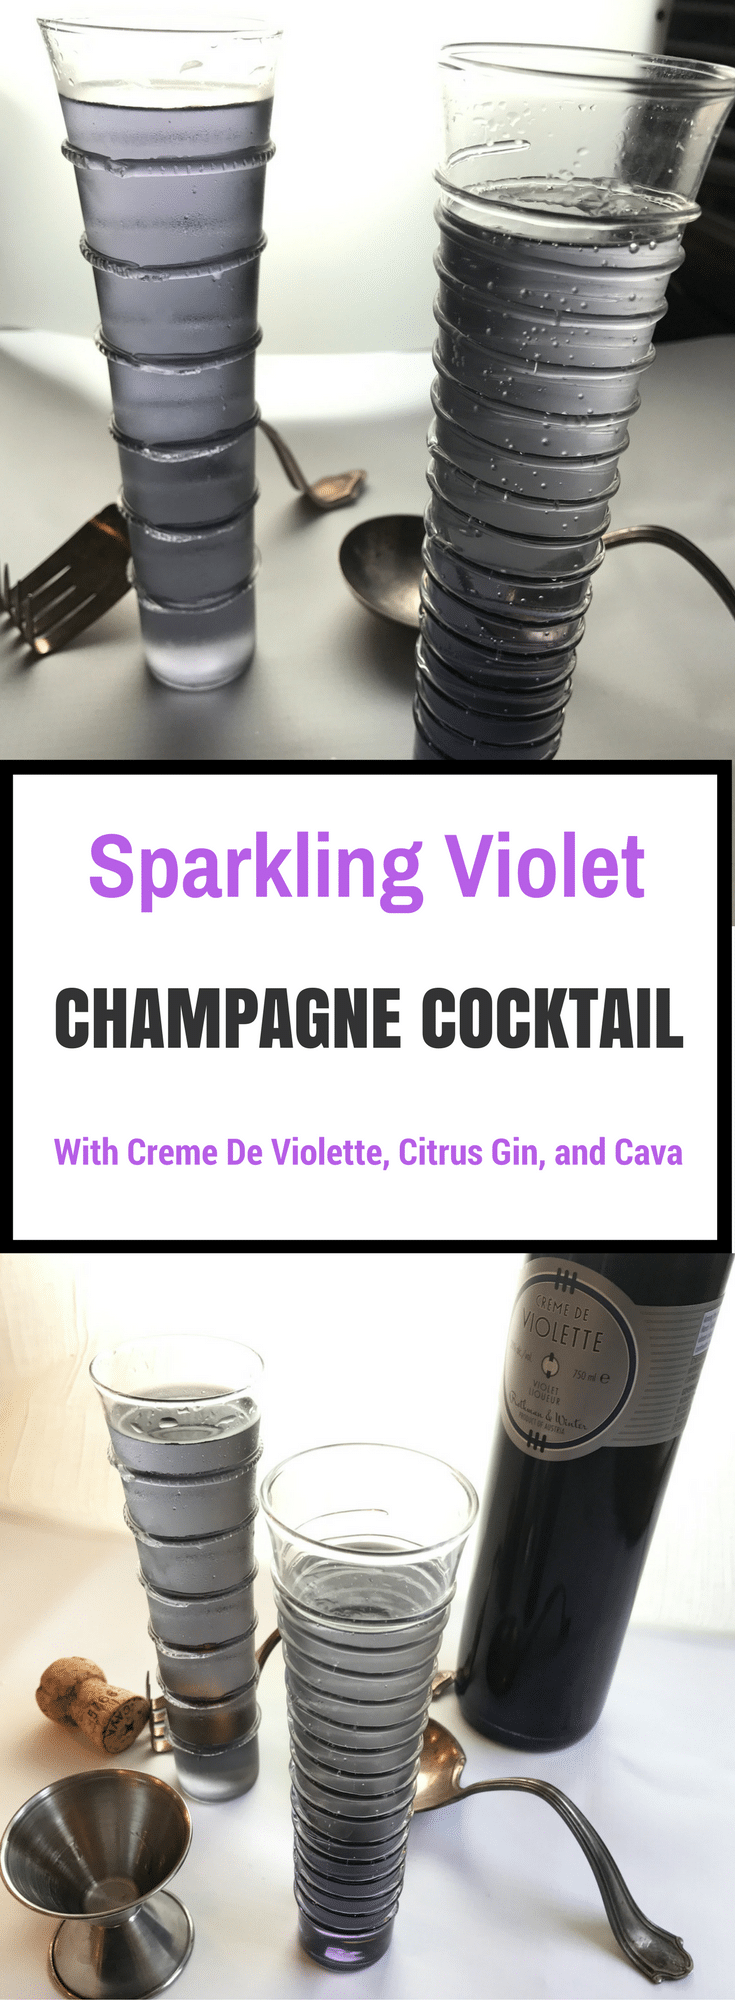 OMG I LOVE this gorgeous Sparkling Violet Champagne Cocktail!  It's velvety sweet & lightly floral with creme de violette, & a splash of citrus gin that balances out that sweetness. Bubbly cava sends it over the top!  It's a perfect brunch or shower drink!  Cocktail | Cocktail Recipe | Creme de Violette | Champagne Cocktail | Champagne Cocktail Recipe | Purple Drink | Brunch Drink | Shower Drink | Shower Cocktail